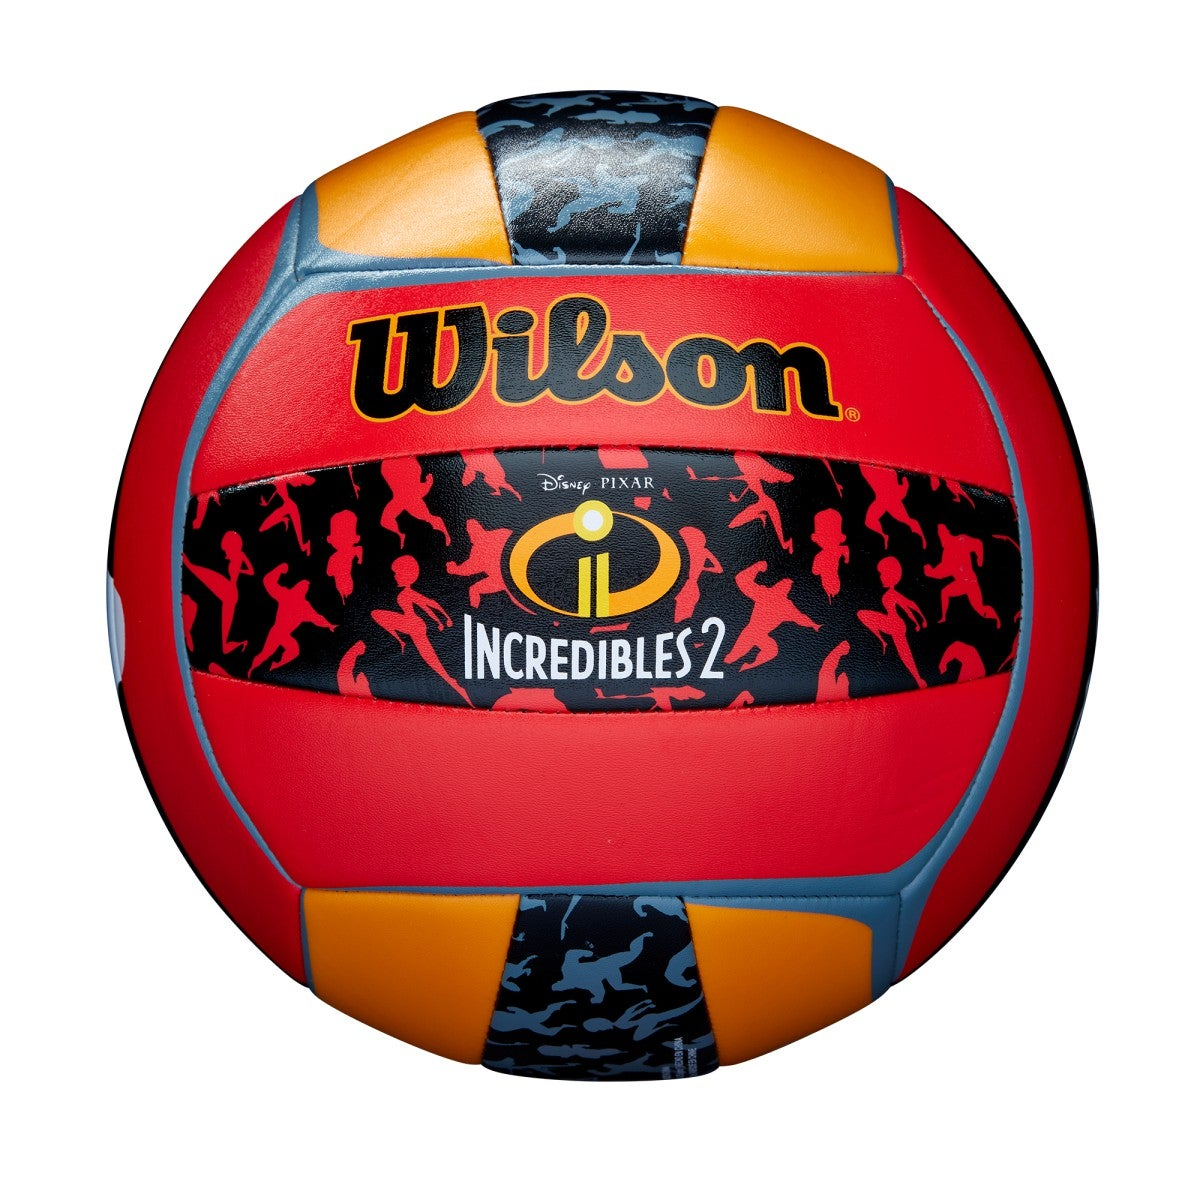 Disney · Pixar Incredibles 2 Characters Incredibles 2 Official Volleyball: Solid Abstraction